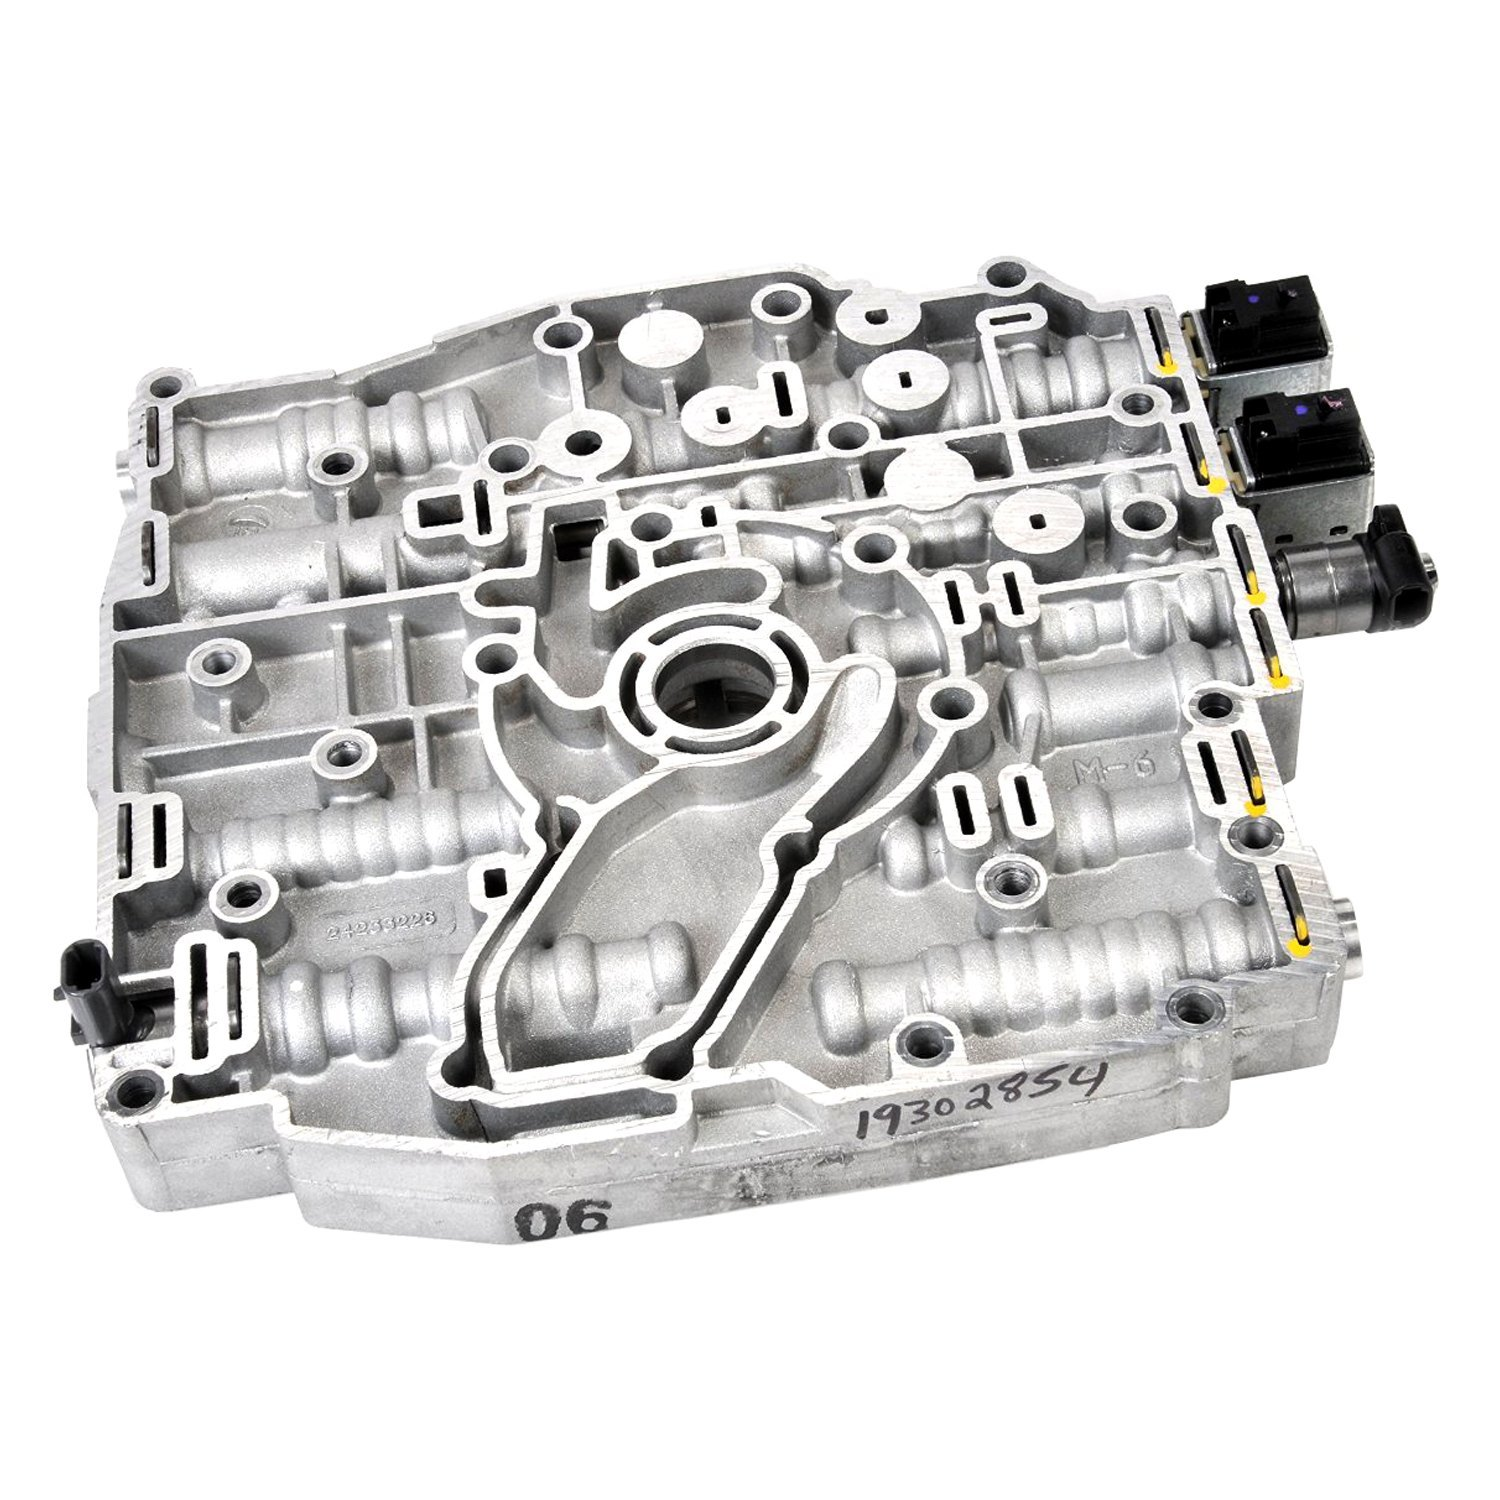 Motorcycles With Auto Transmission U2013 Part 1 Electrical Manual Clutch Diagram Insightcentralnet Encyclopedia Acdelco U00ae 19302855